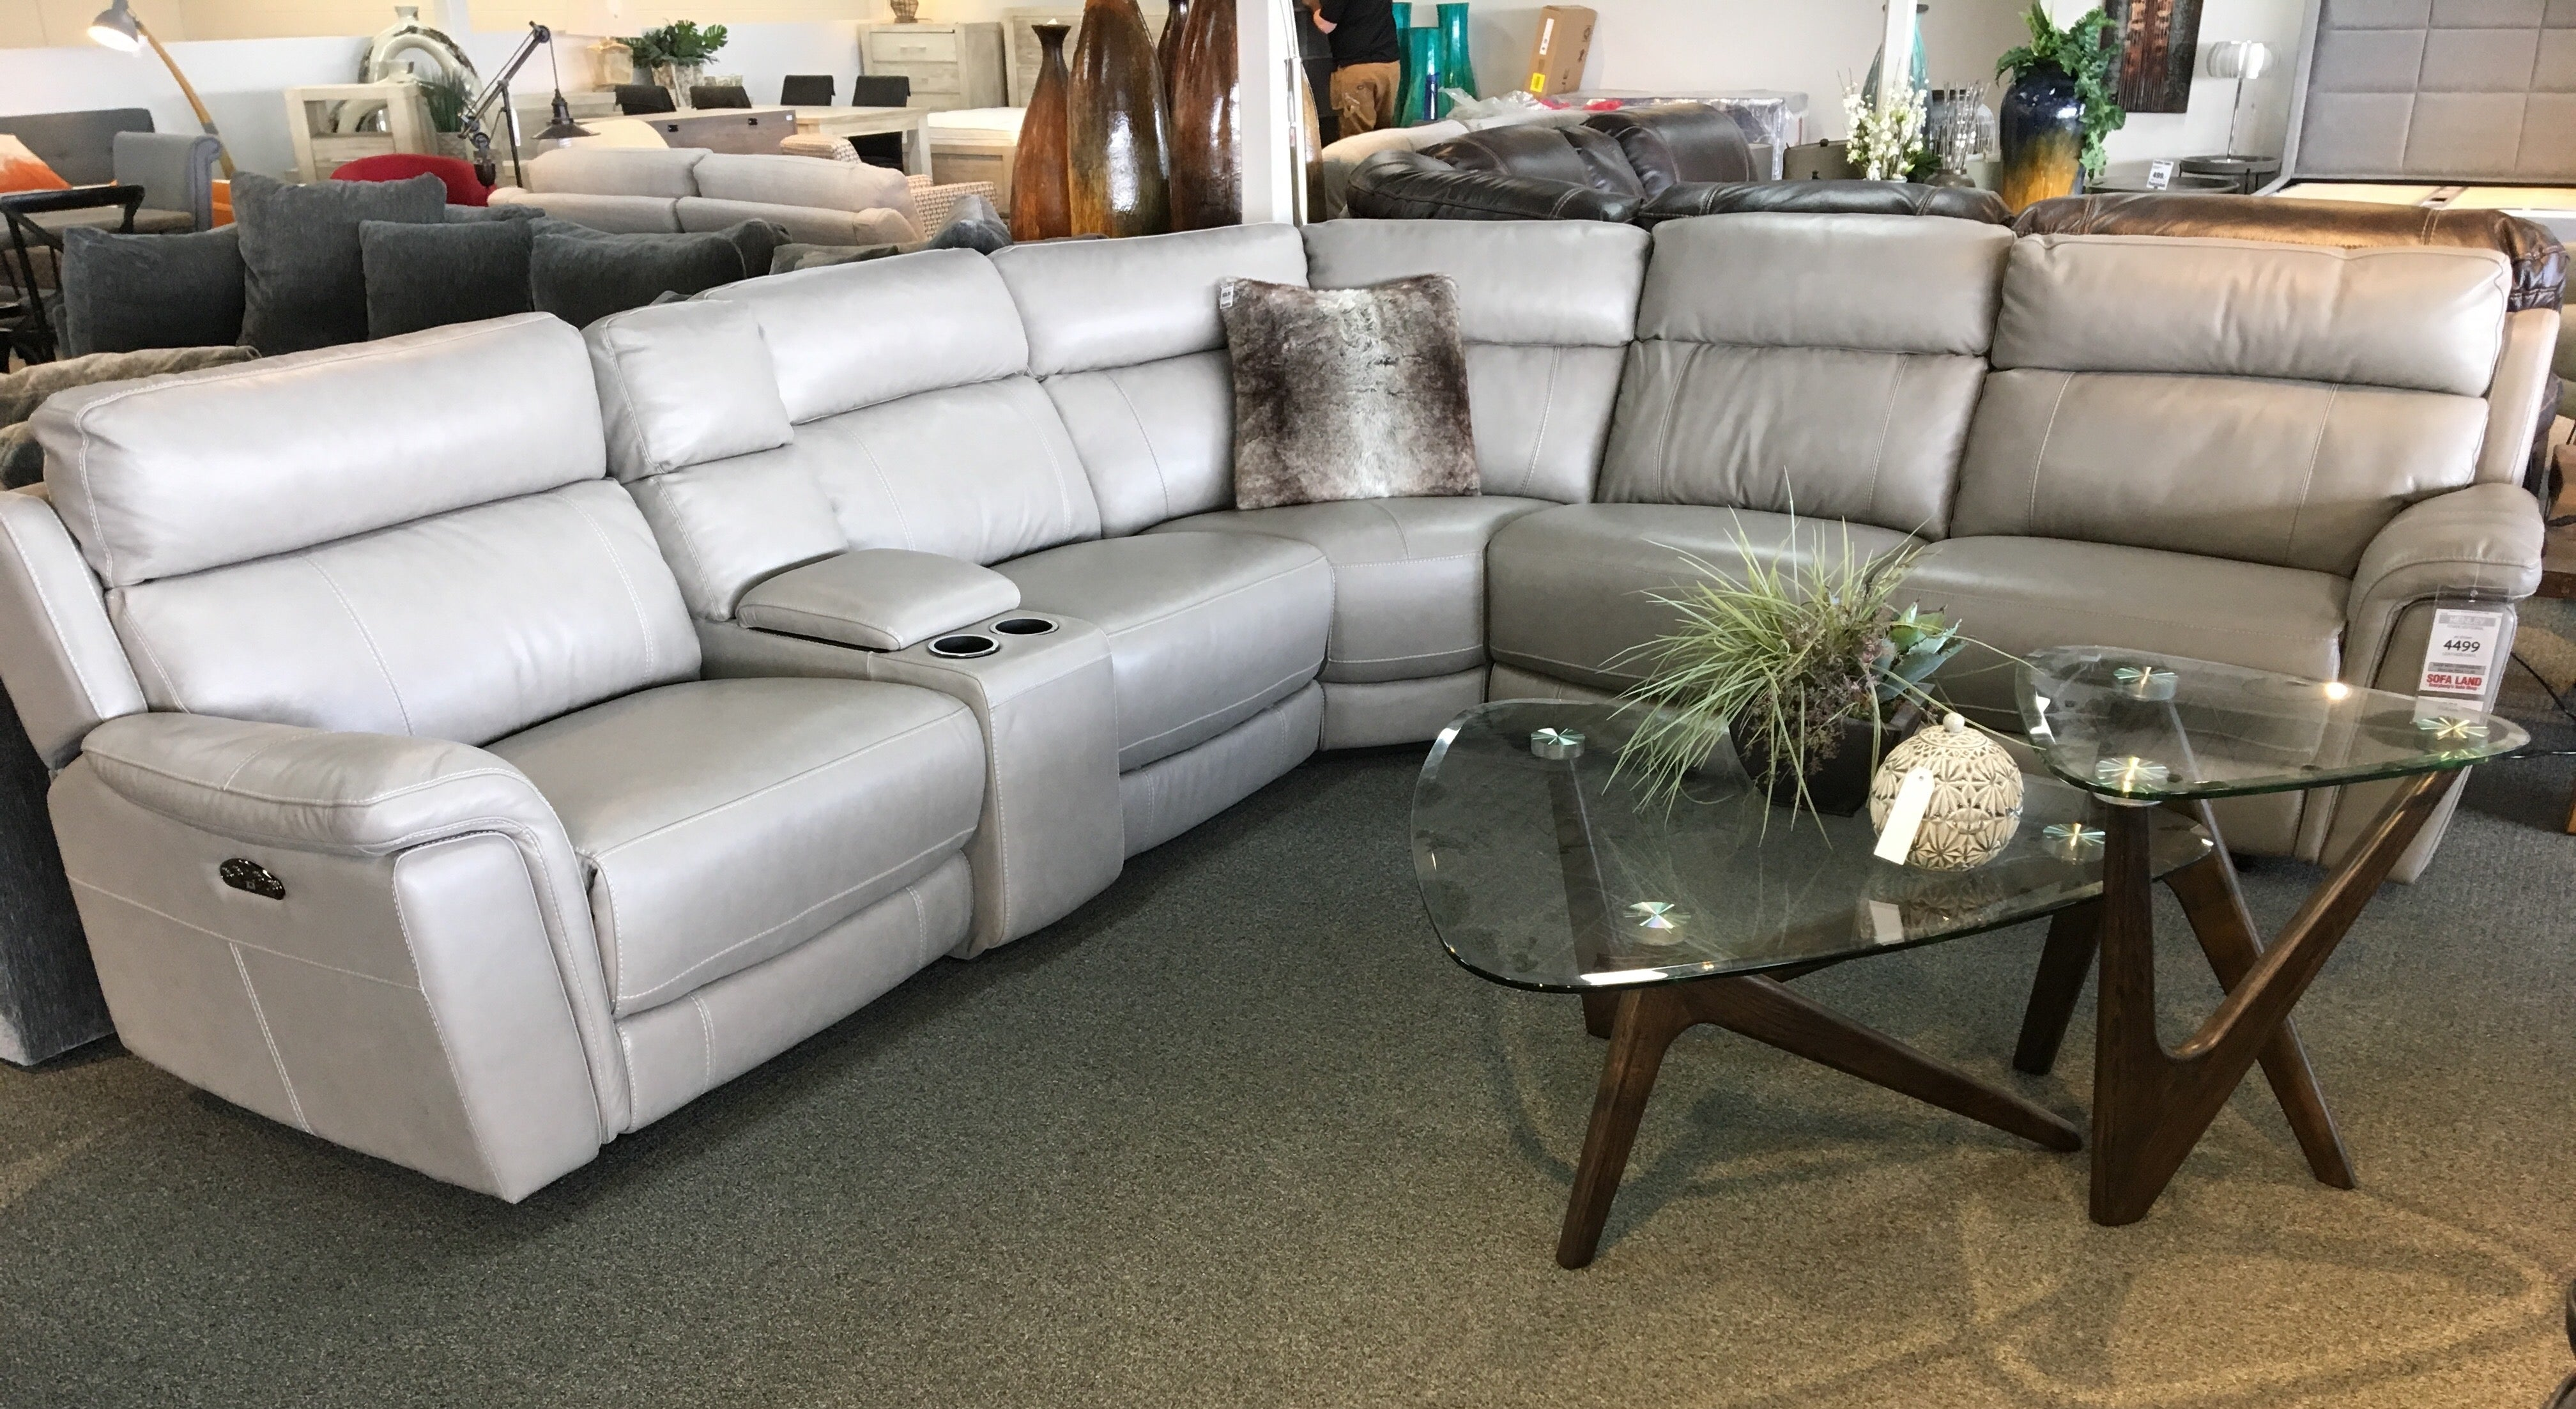 Konto and Sofa Land Outlet Image